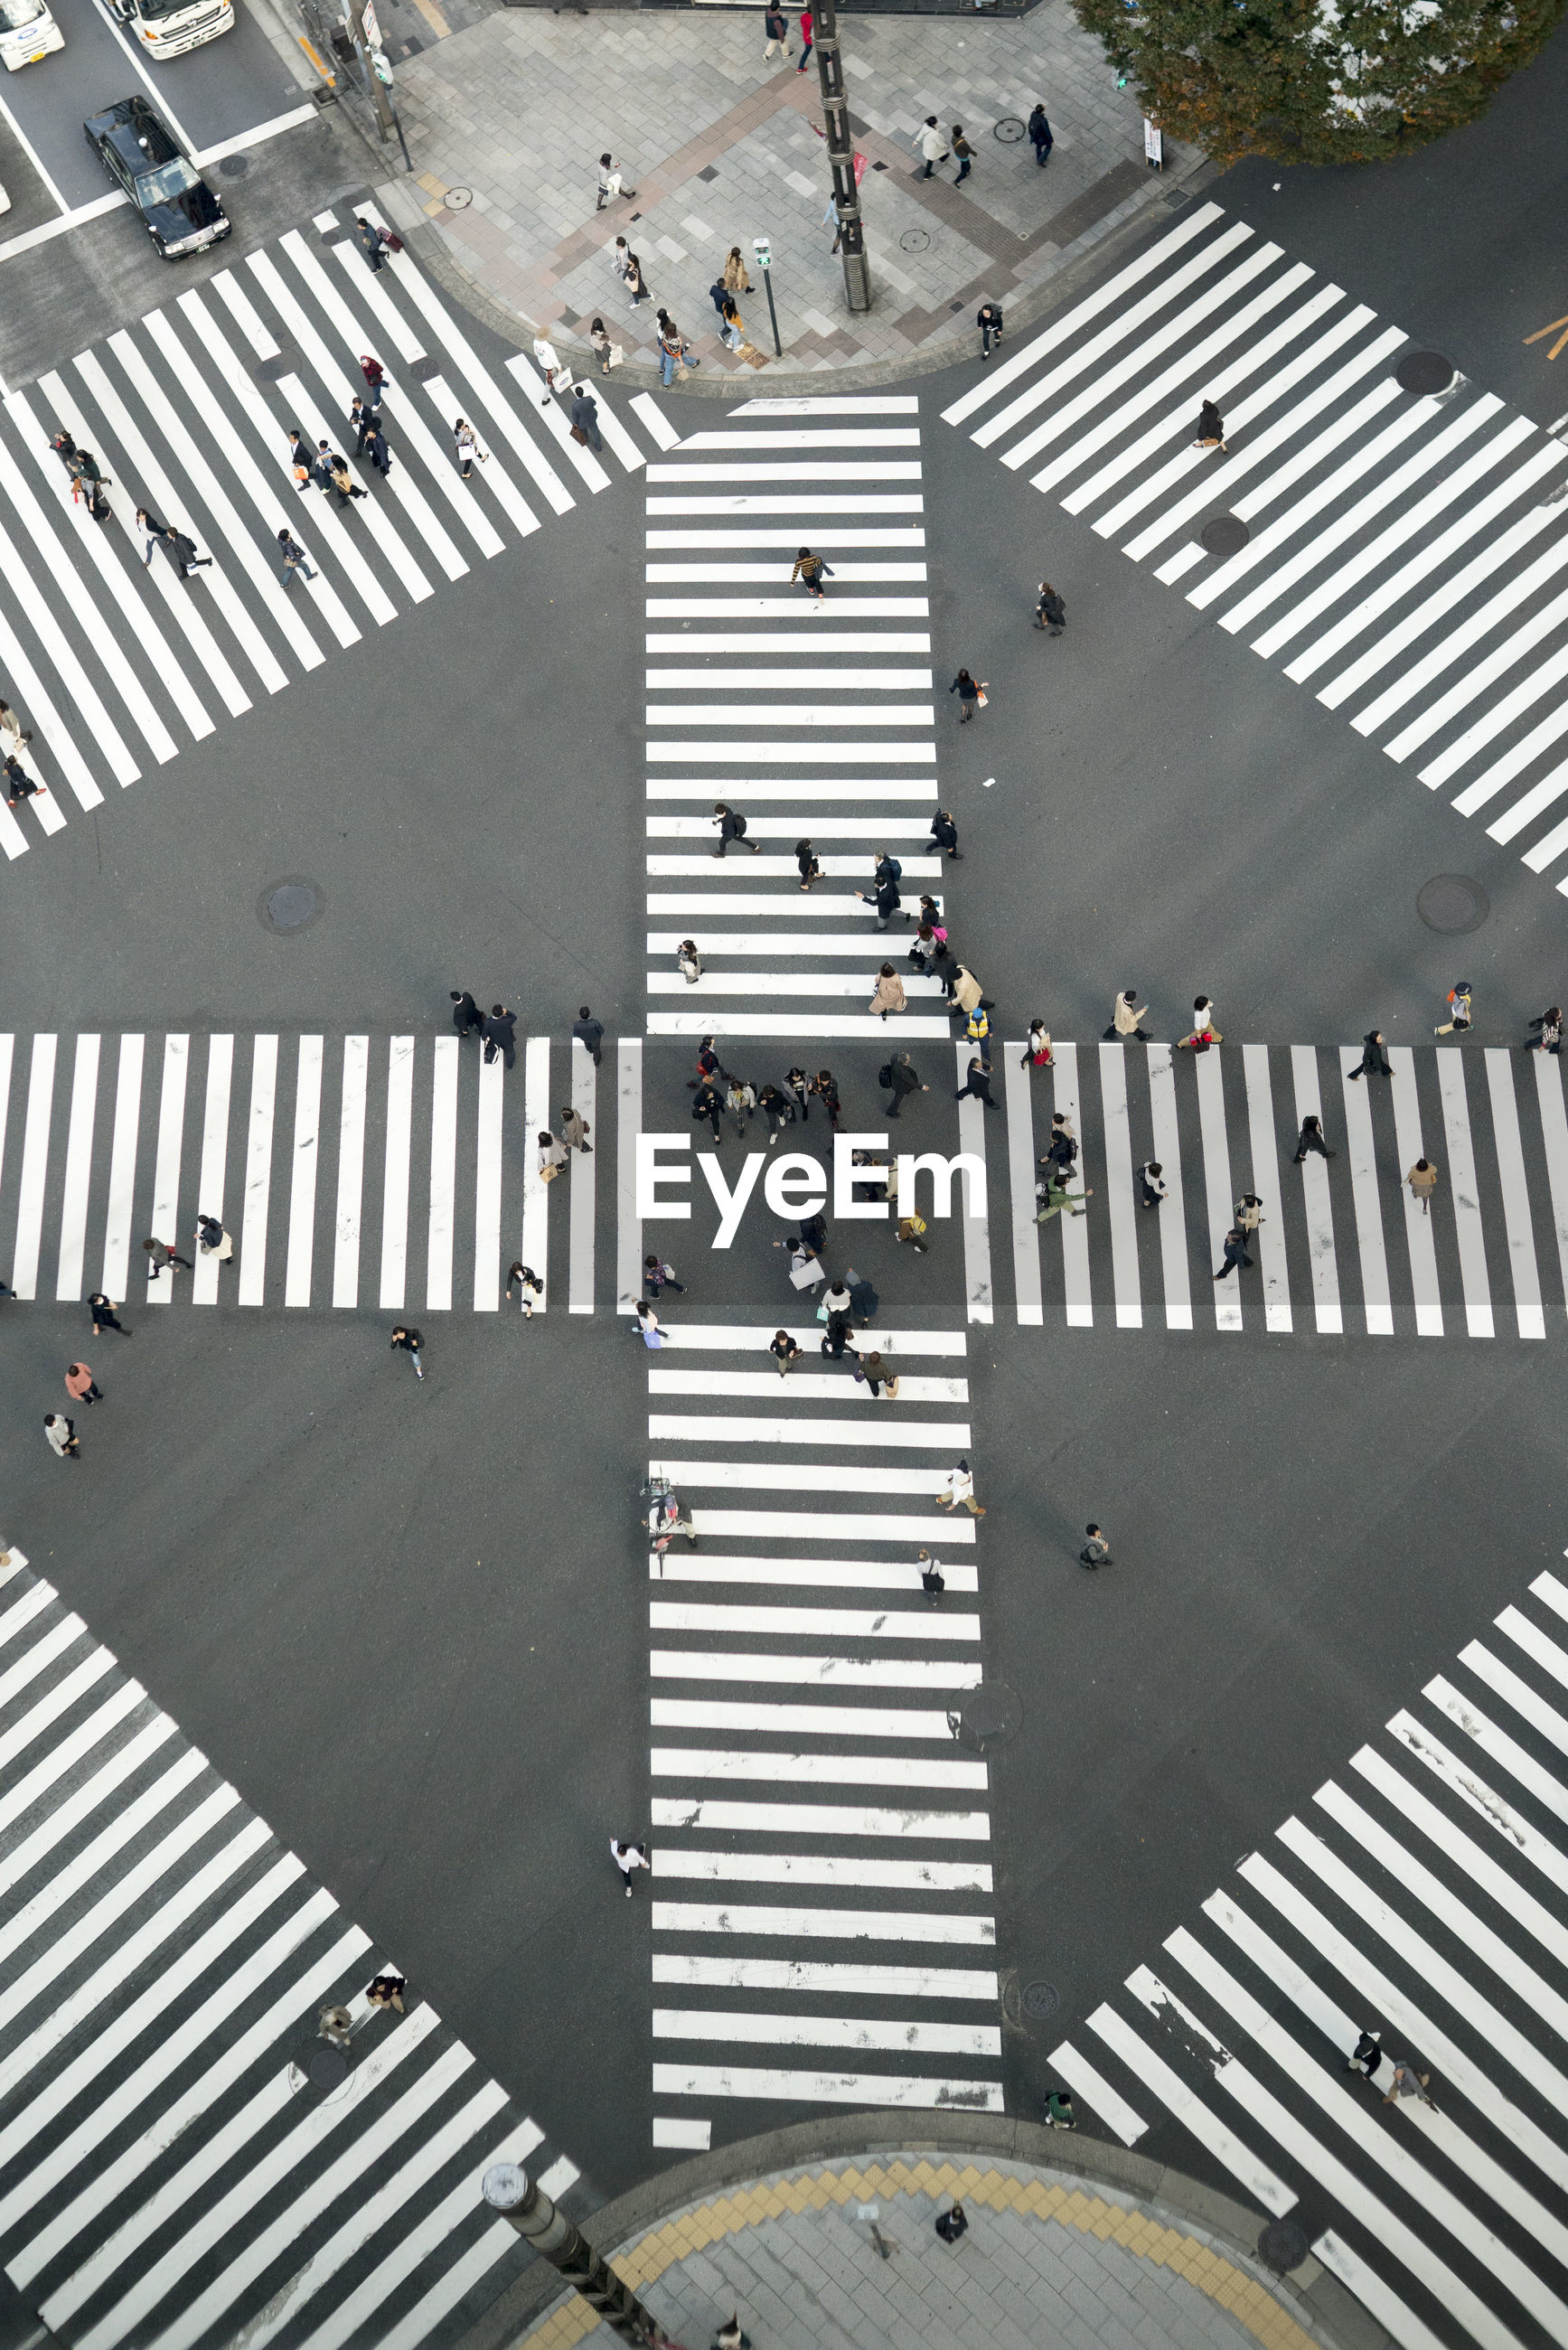 Directly above shot of people crossing street in city